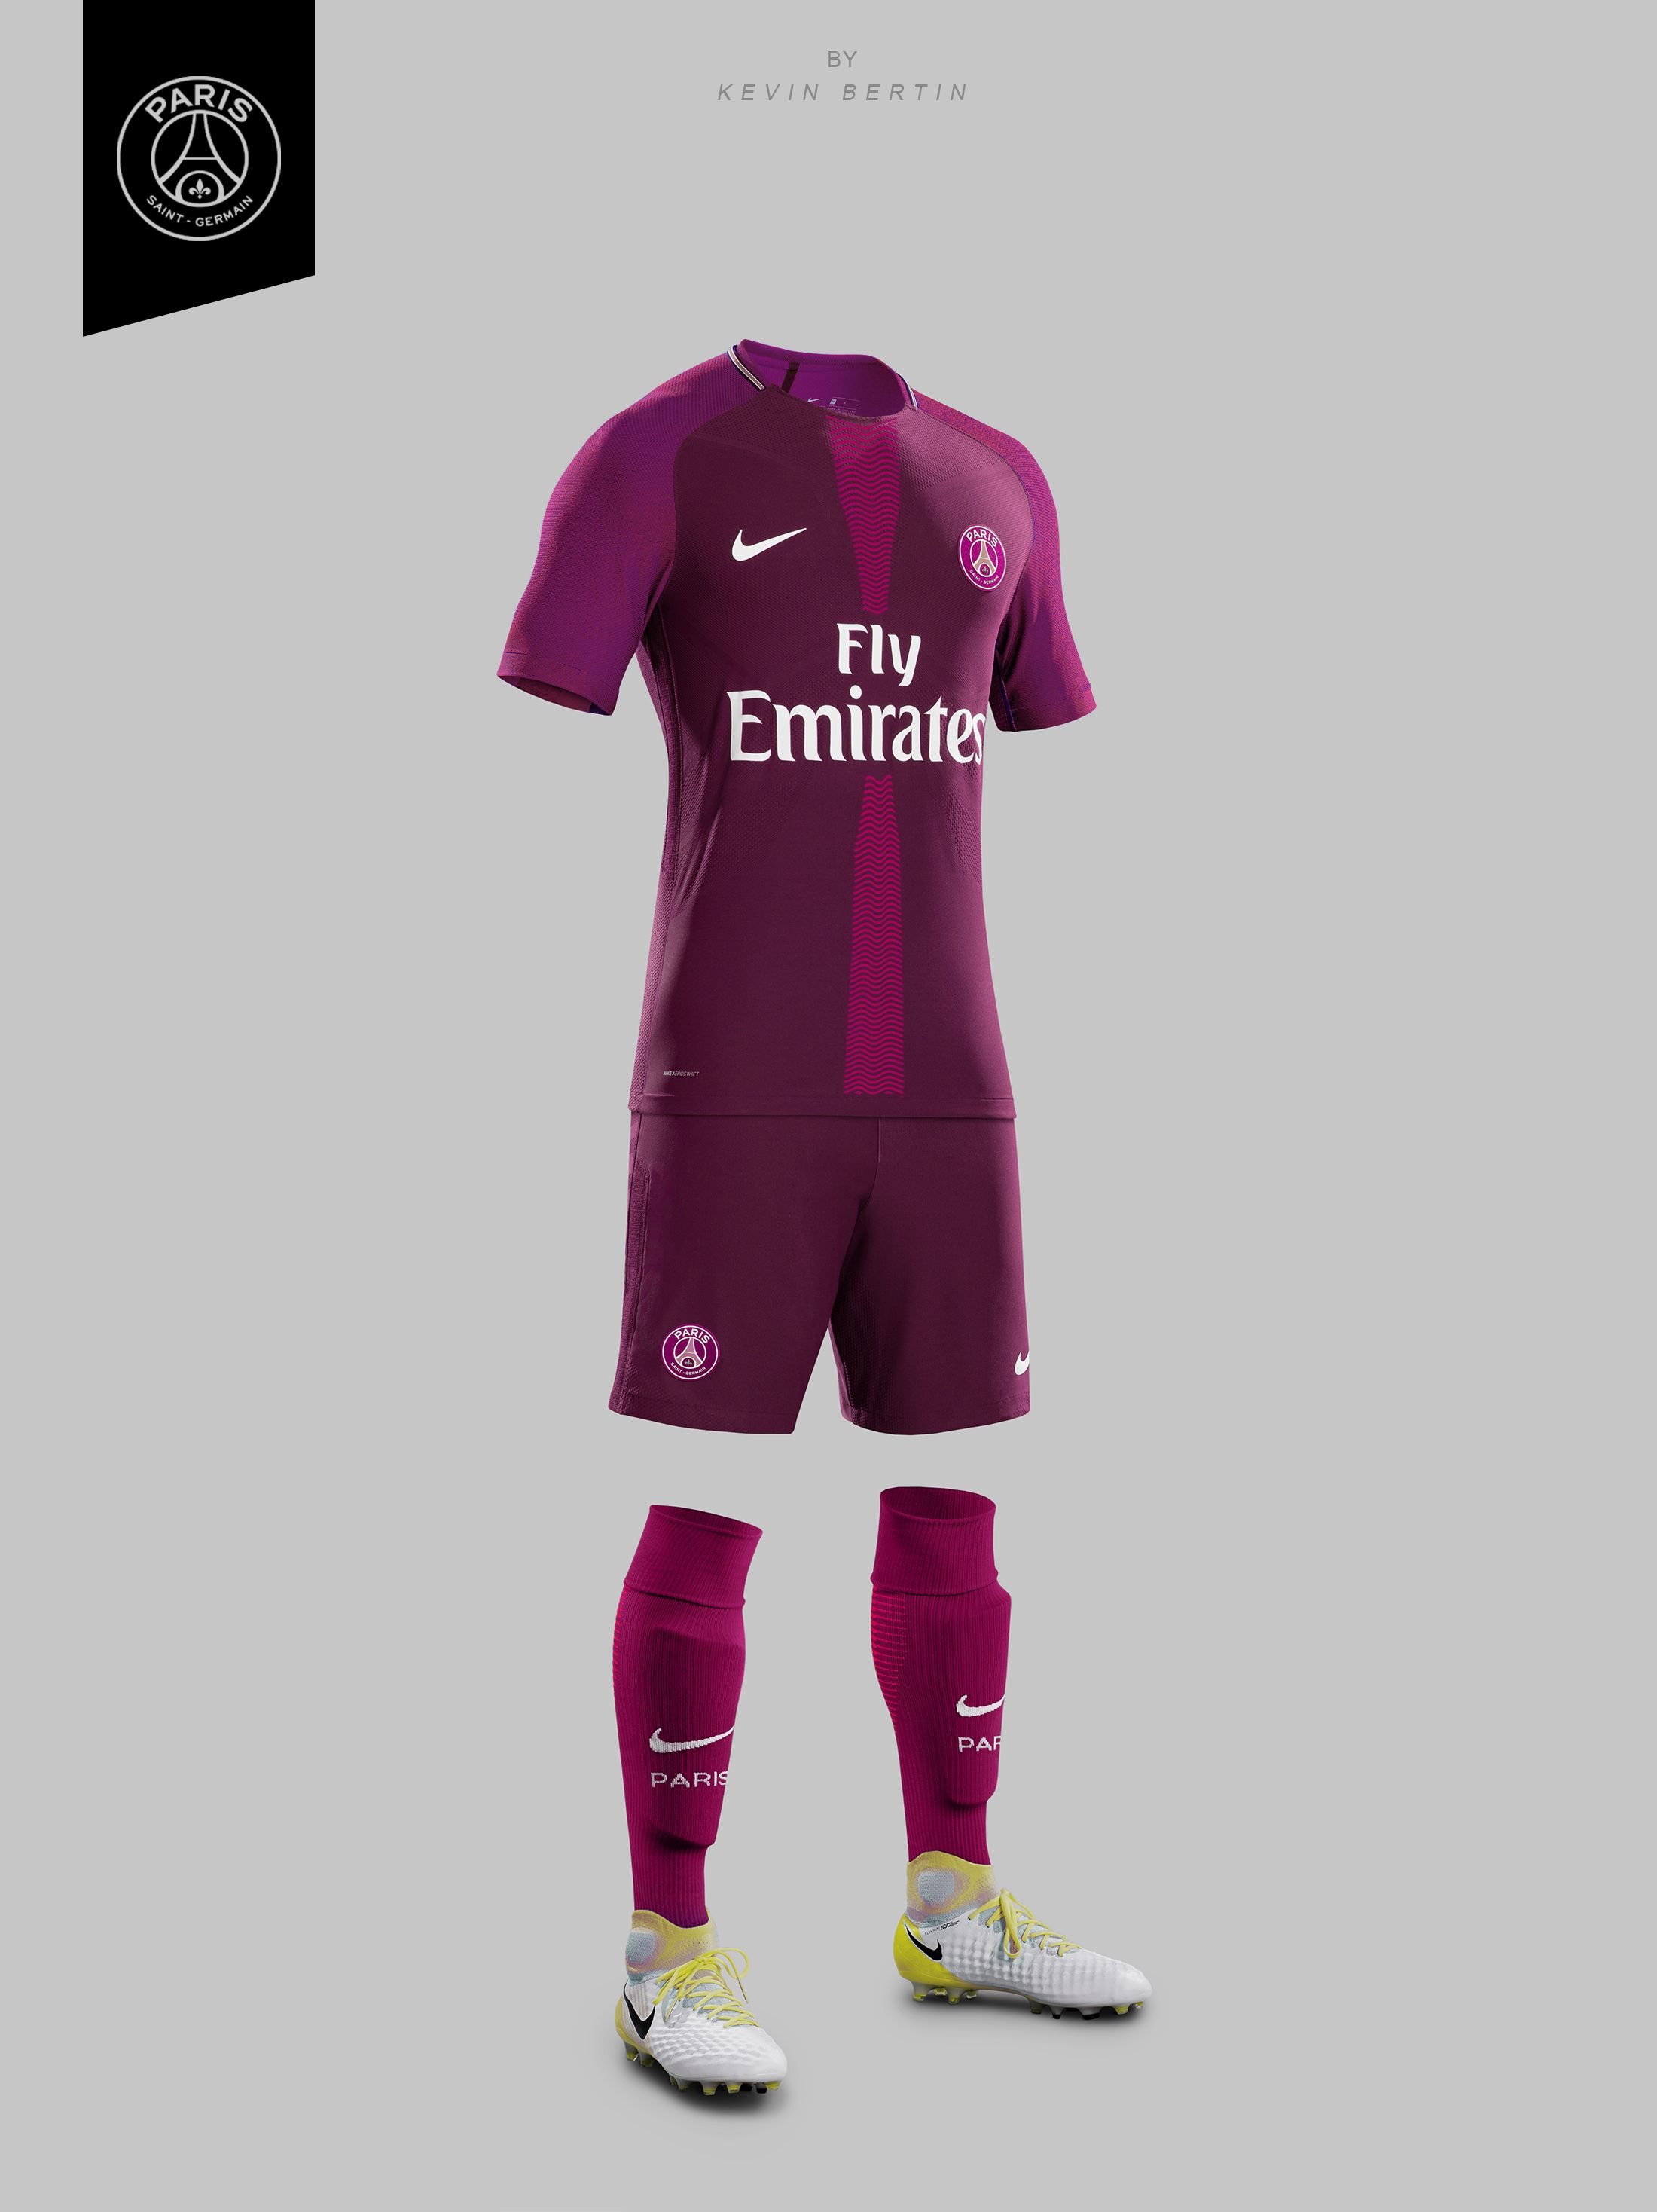 1b0d6a52dc2 PSG Concept Design by Kevin Bertin Jersey Maillot 2018-2019 Kit away Paris  Saint-Germain